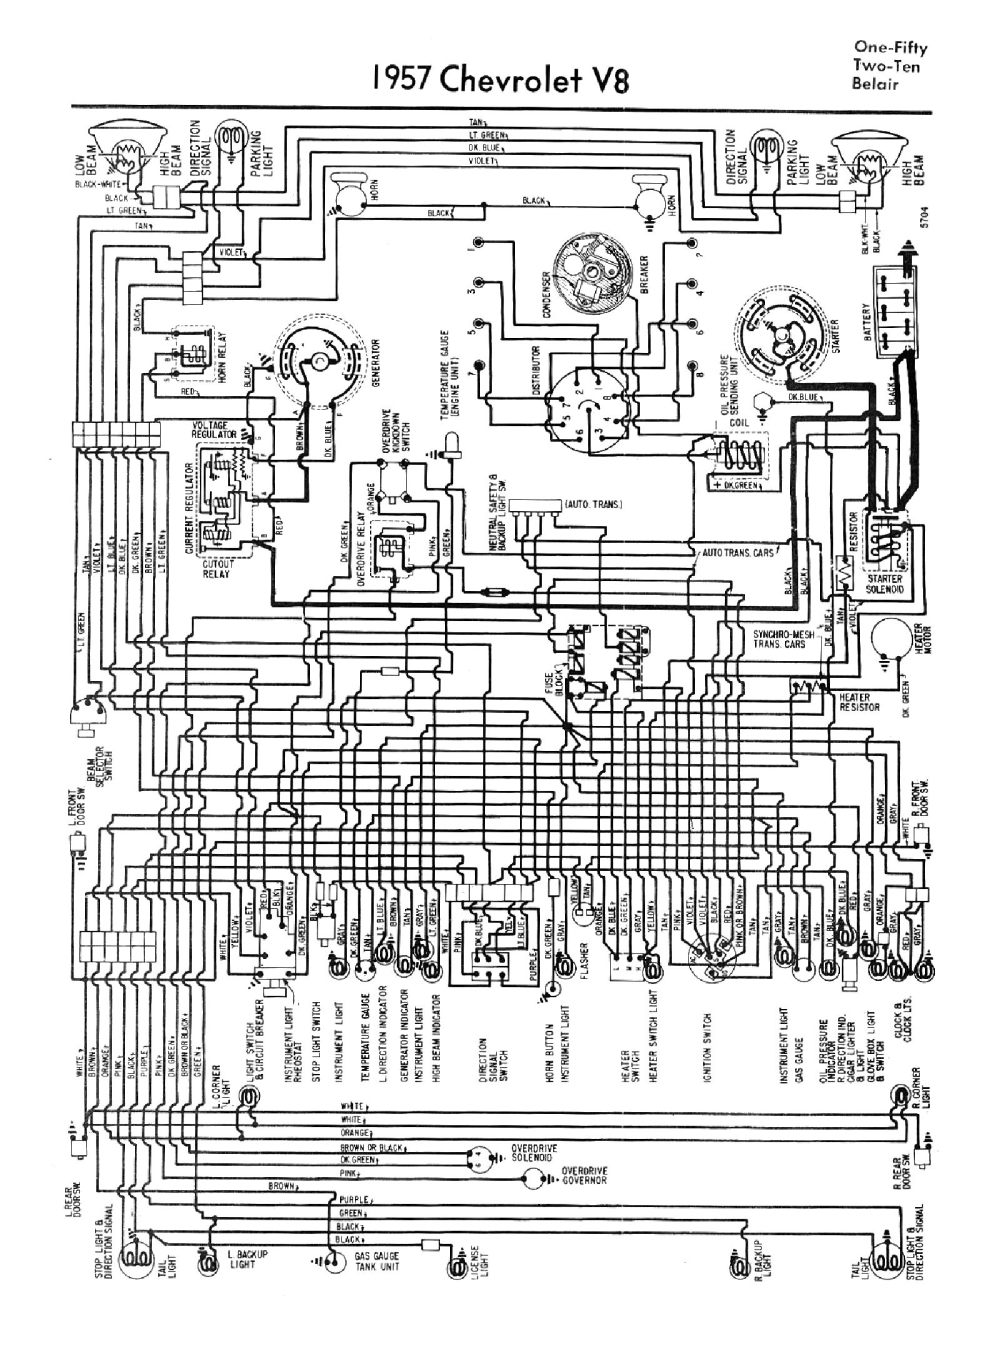 medium resolution of 1977 corvette fuse box diagram keenpartscom pages catalog3php 1977 corvette fuse box diagram 1977 corvette wiring